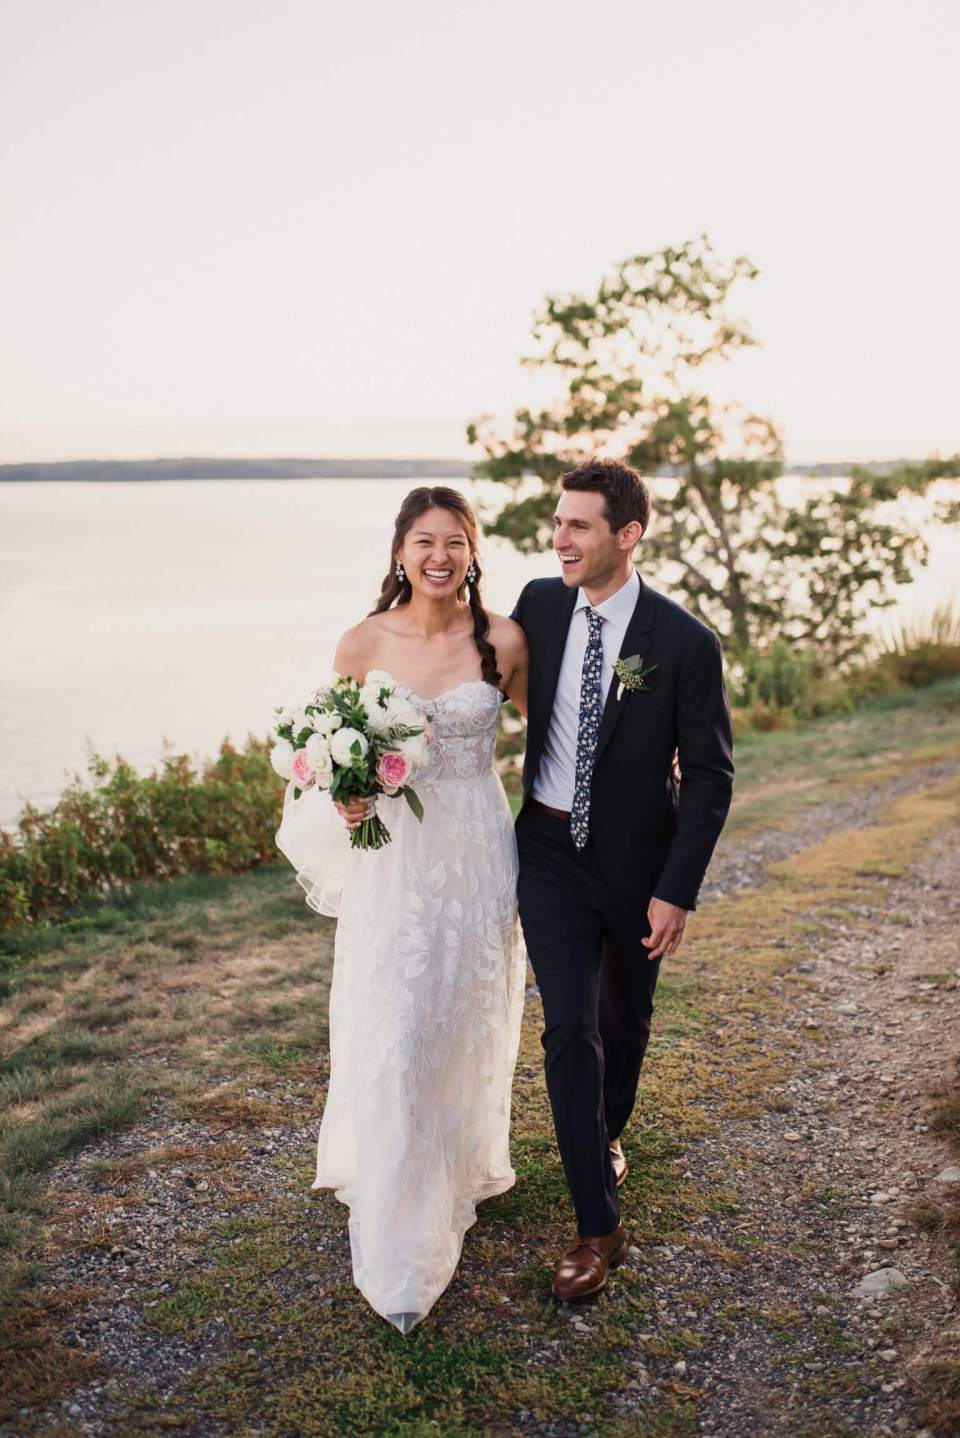 The bride and groom walk by the lake at their wedding.